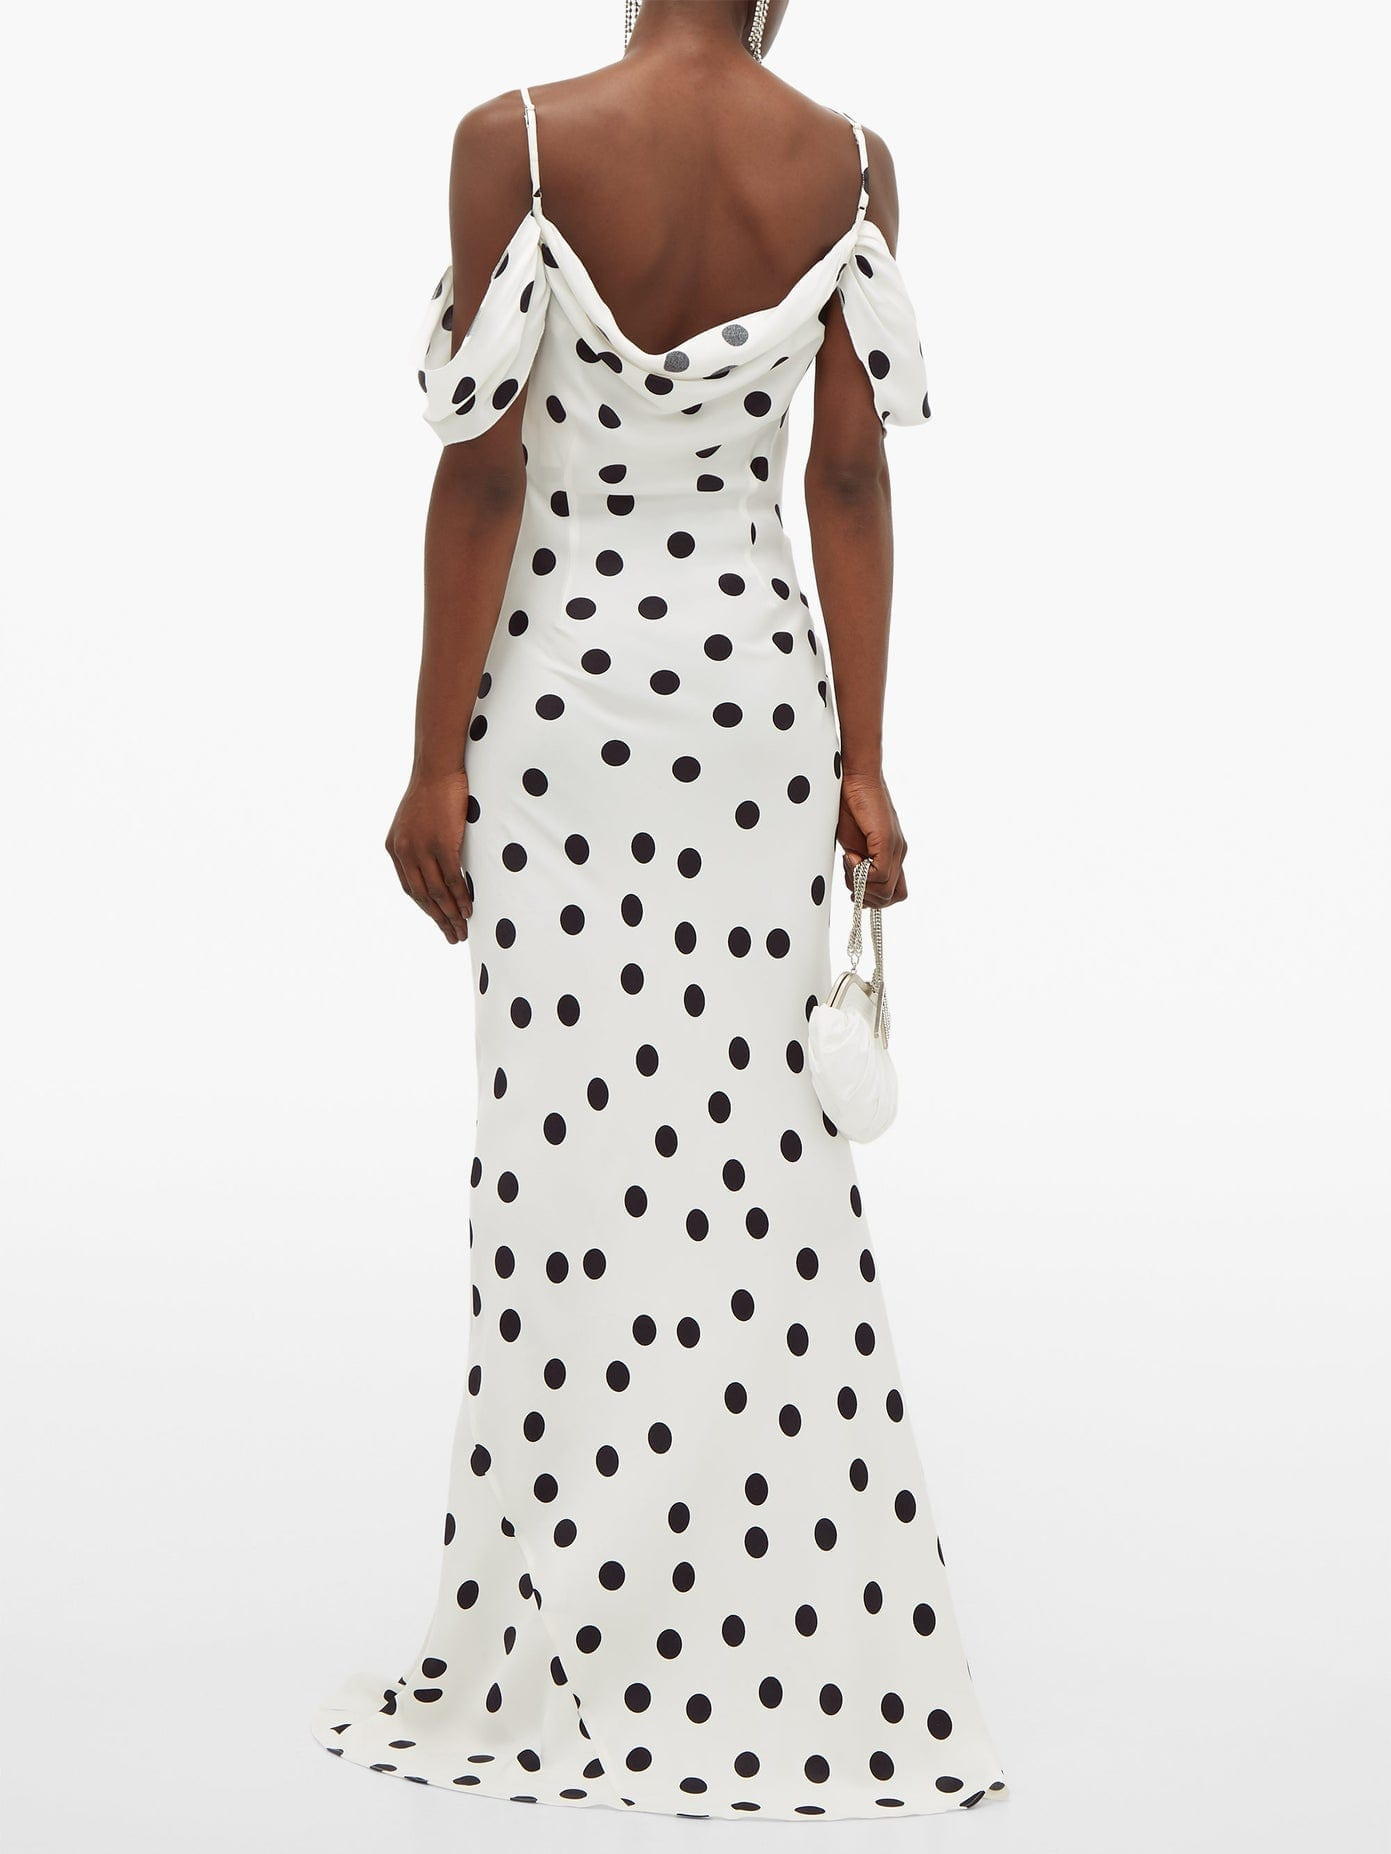 RAT & BOA Antonia Polka-dot Off-the-shoulder Dress